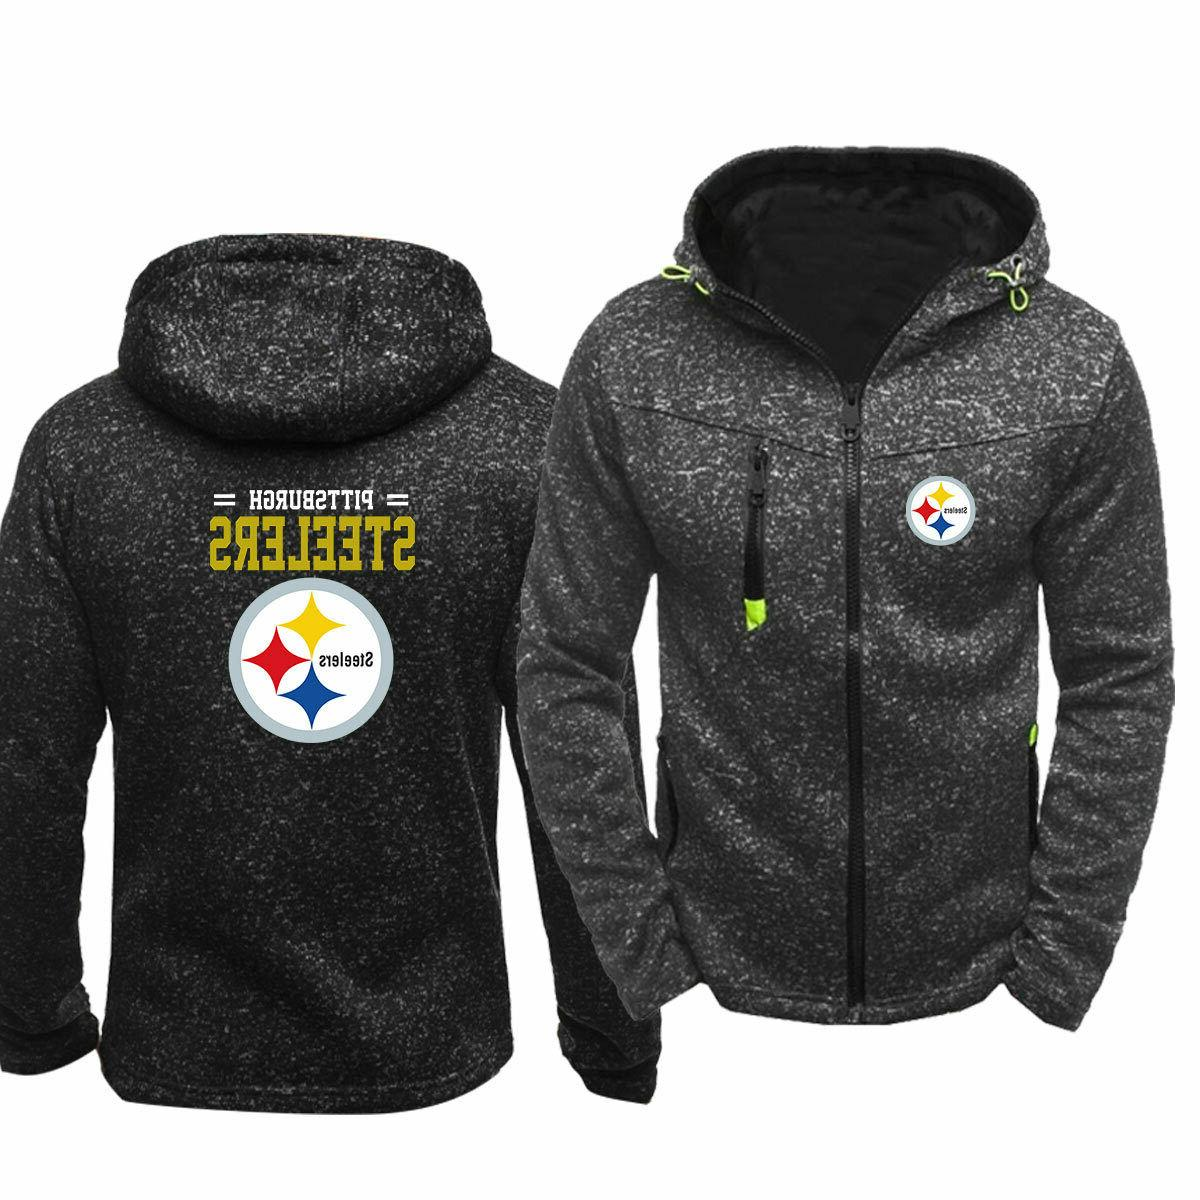 new hot pittsburgh steelers fans hoodie sporty